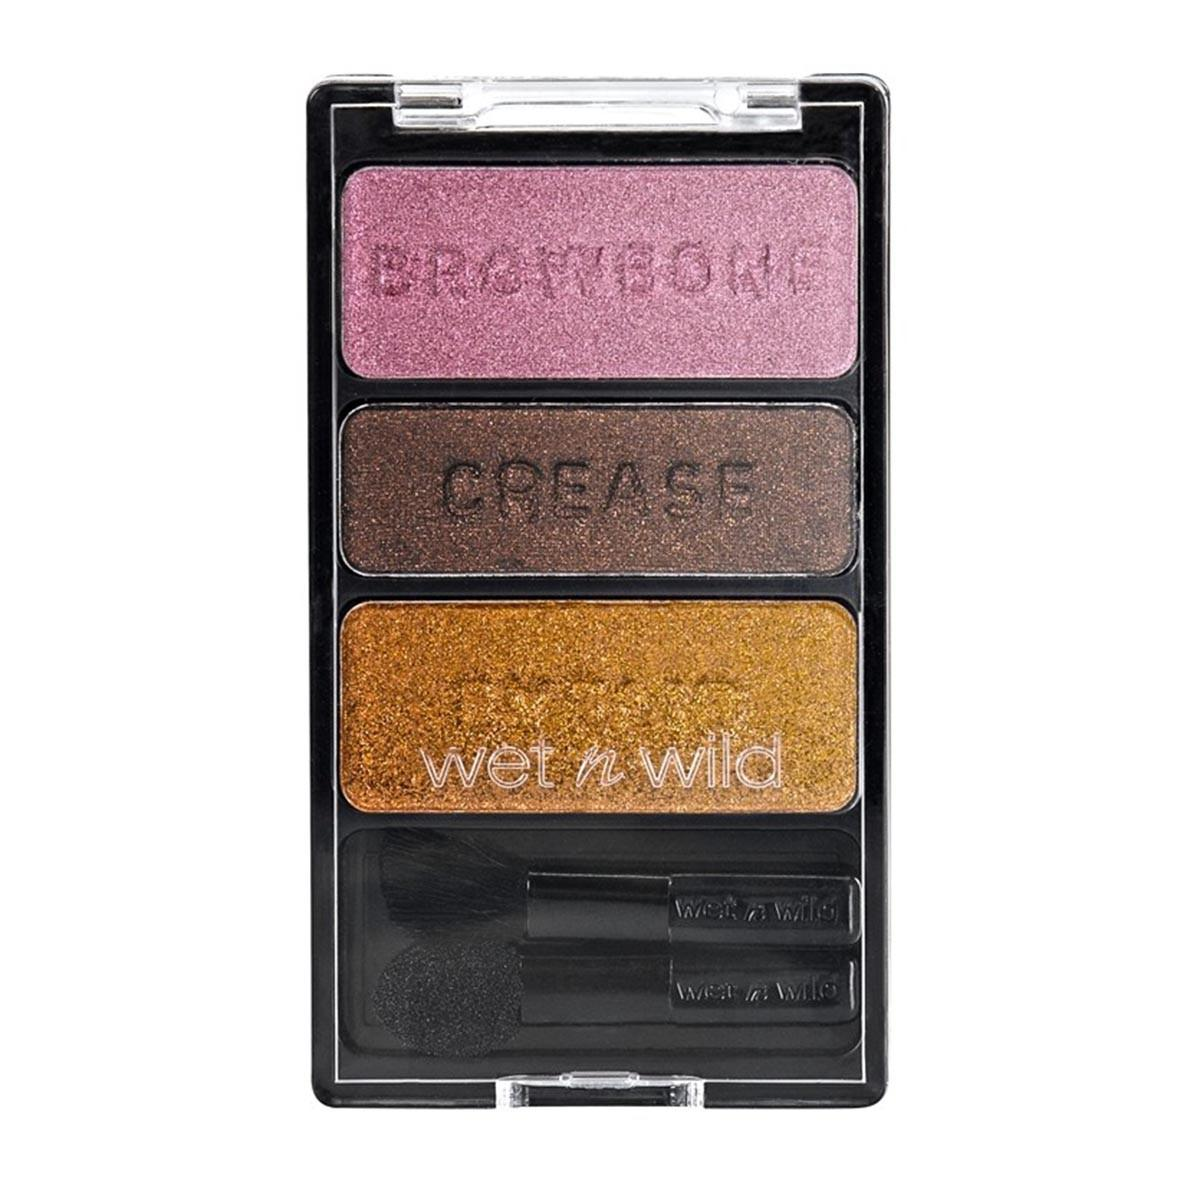 Wet n wild Eyeshadow Trio I M Getting Sunburned